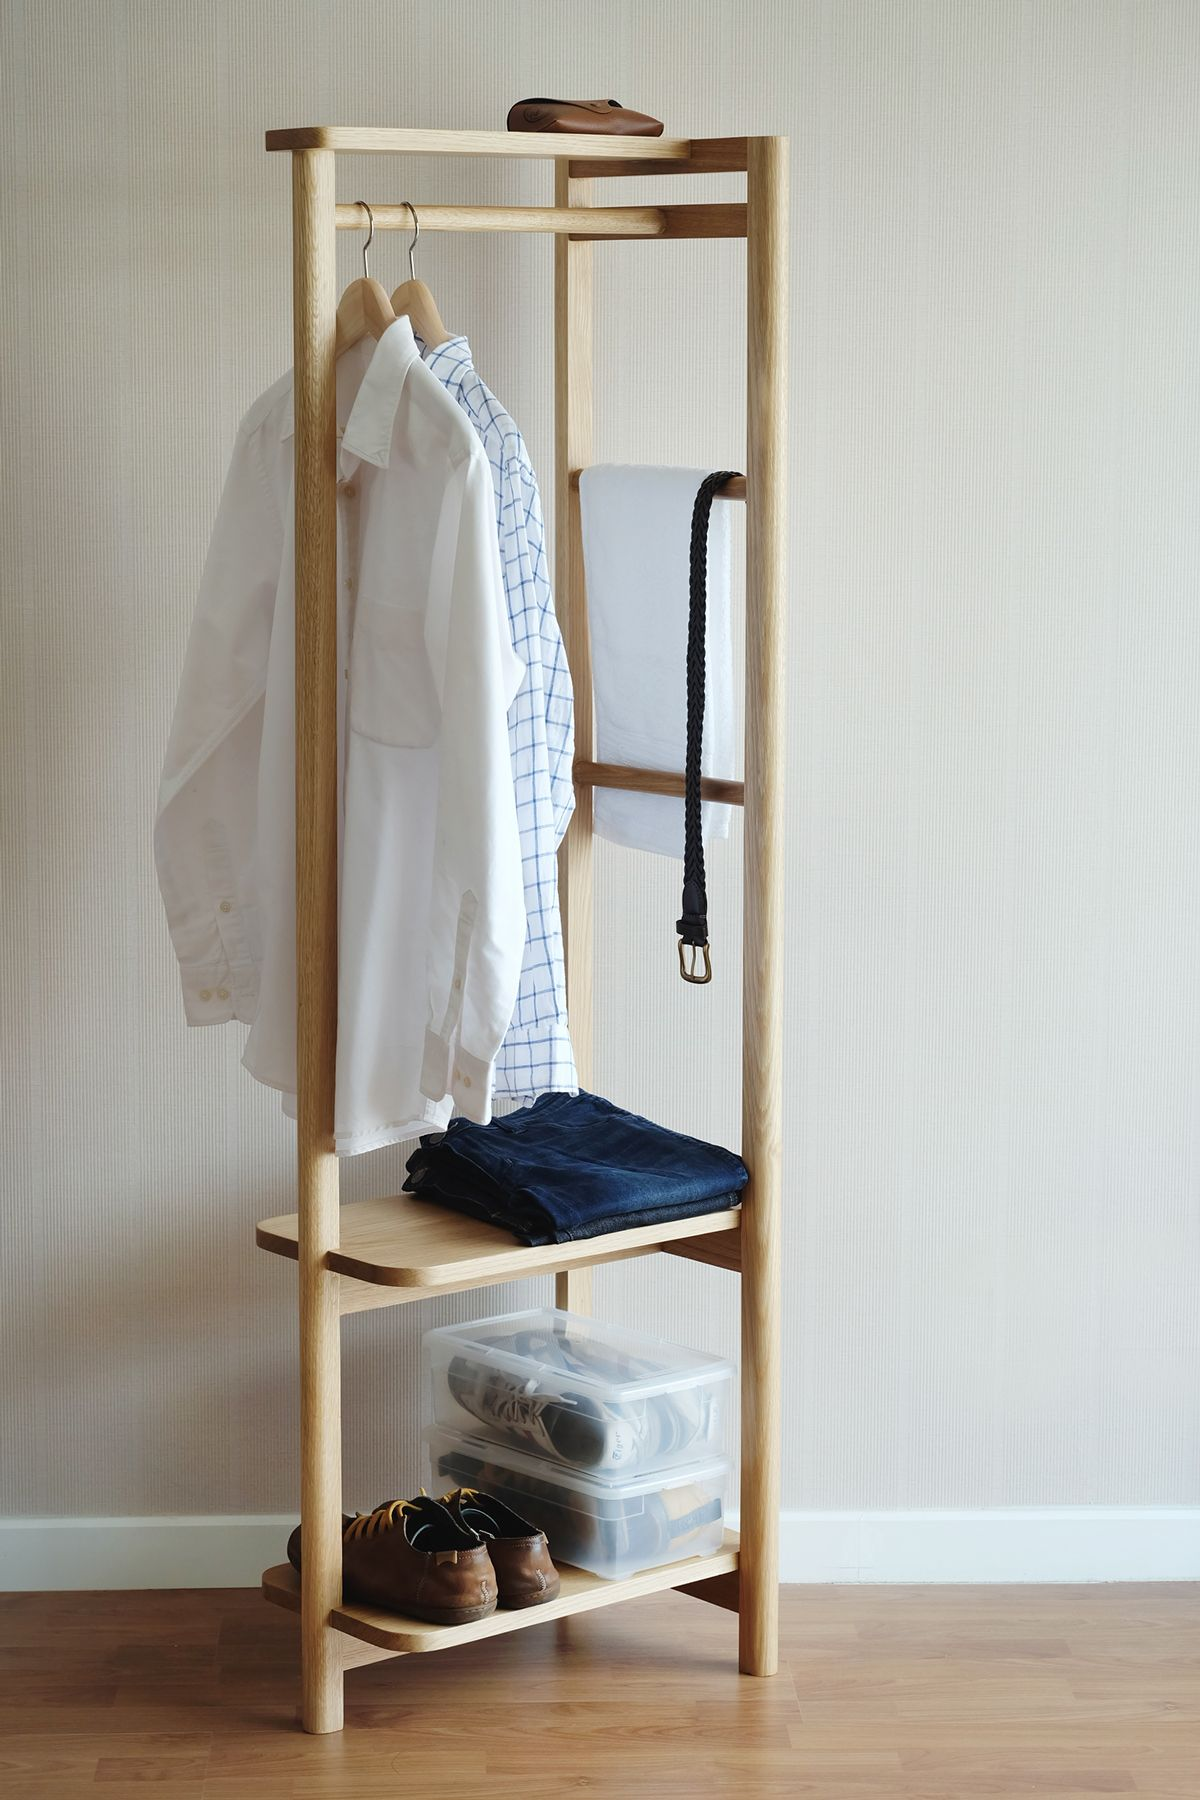 Kitt Clothes Stand On Behance 画像あり 木箱で整理 家具デザイン クローゼット 収納